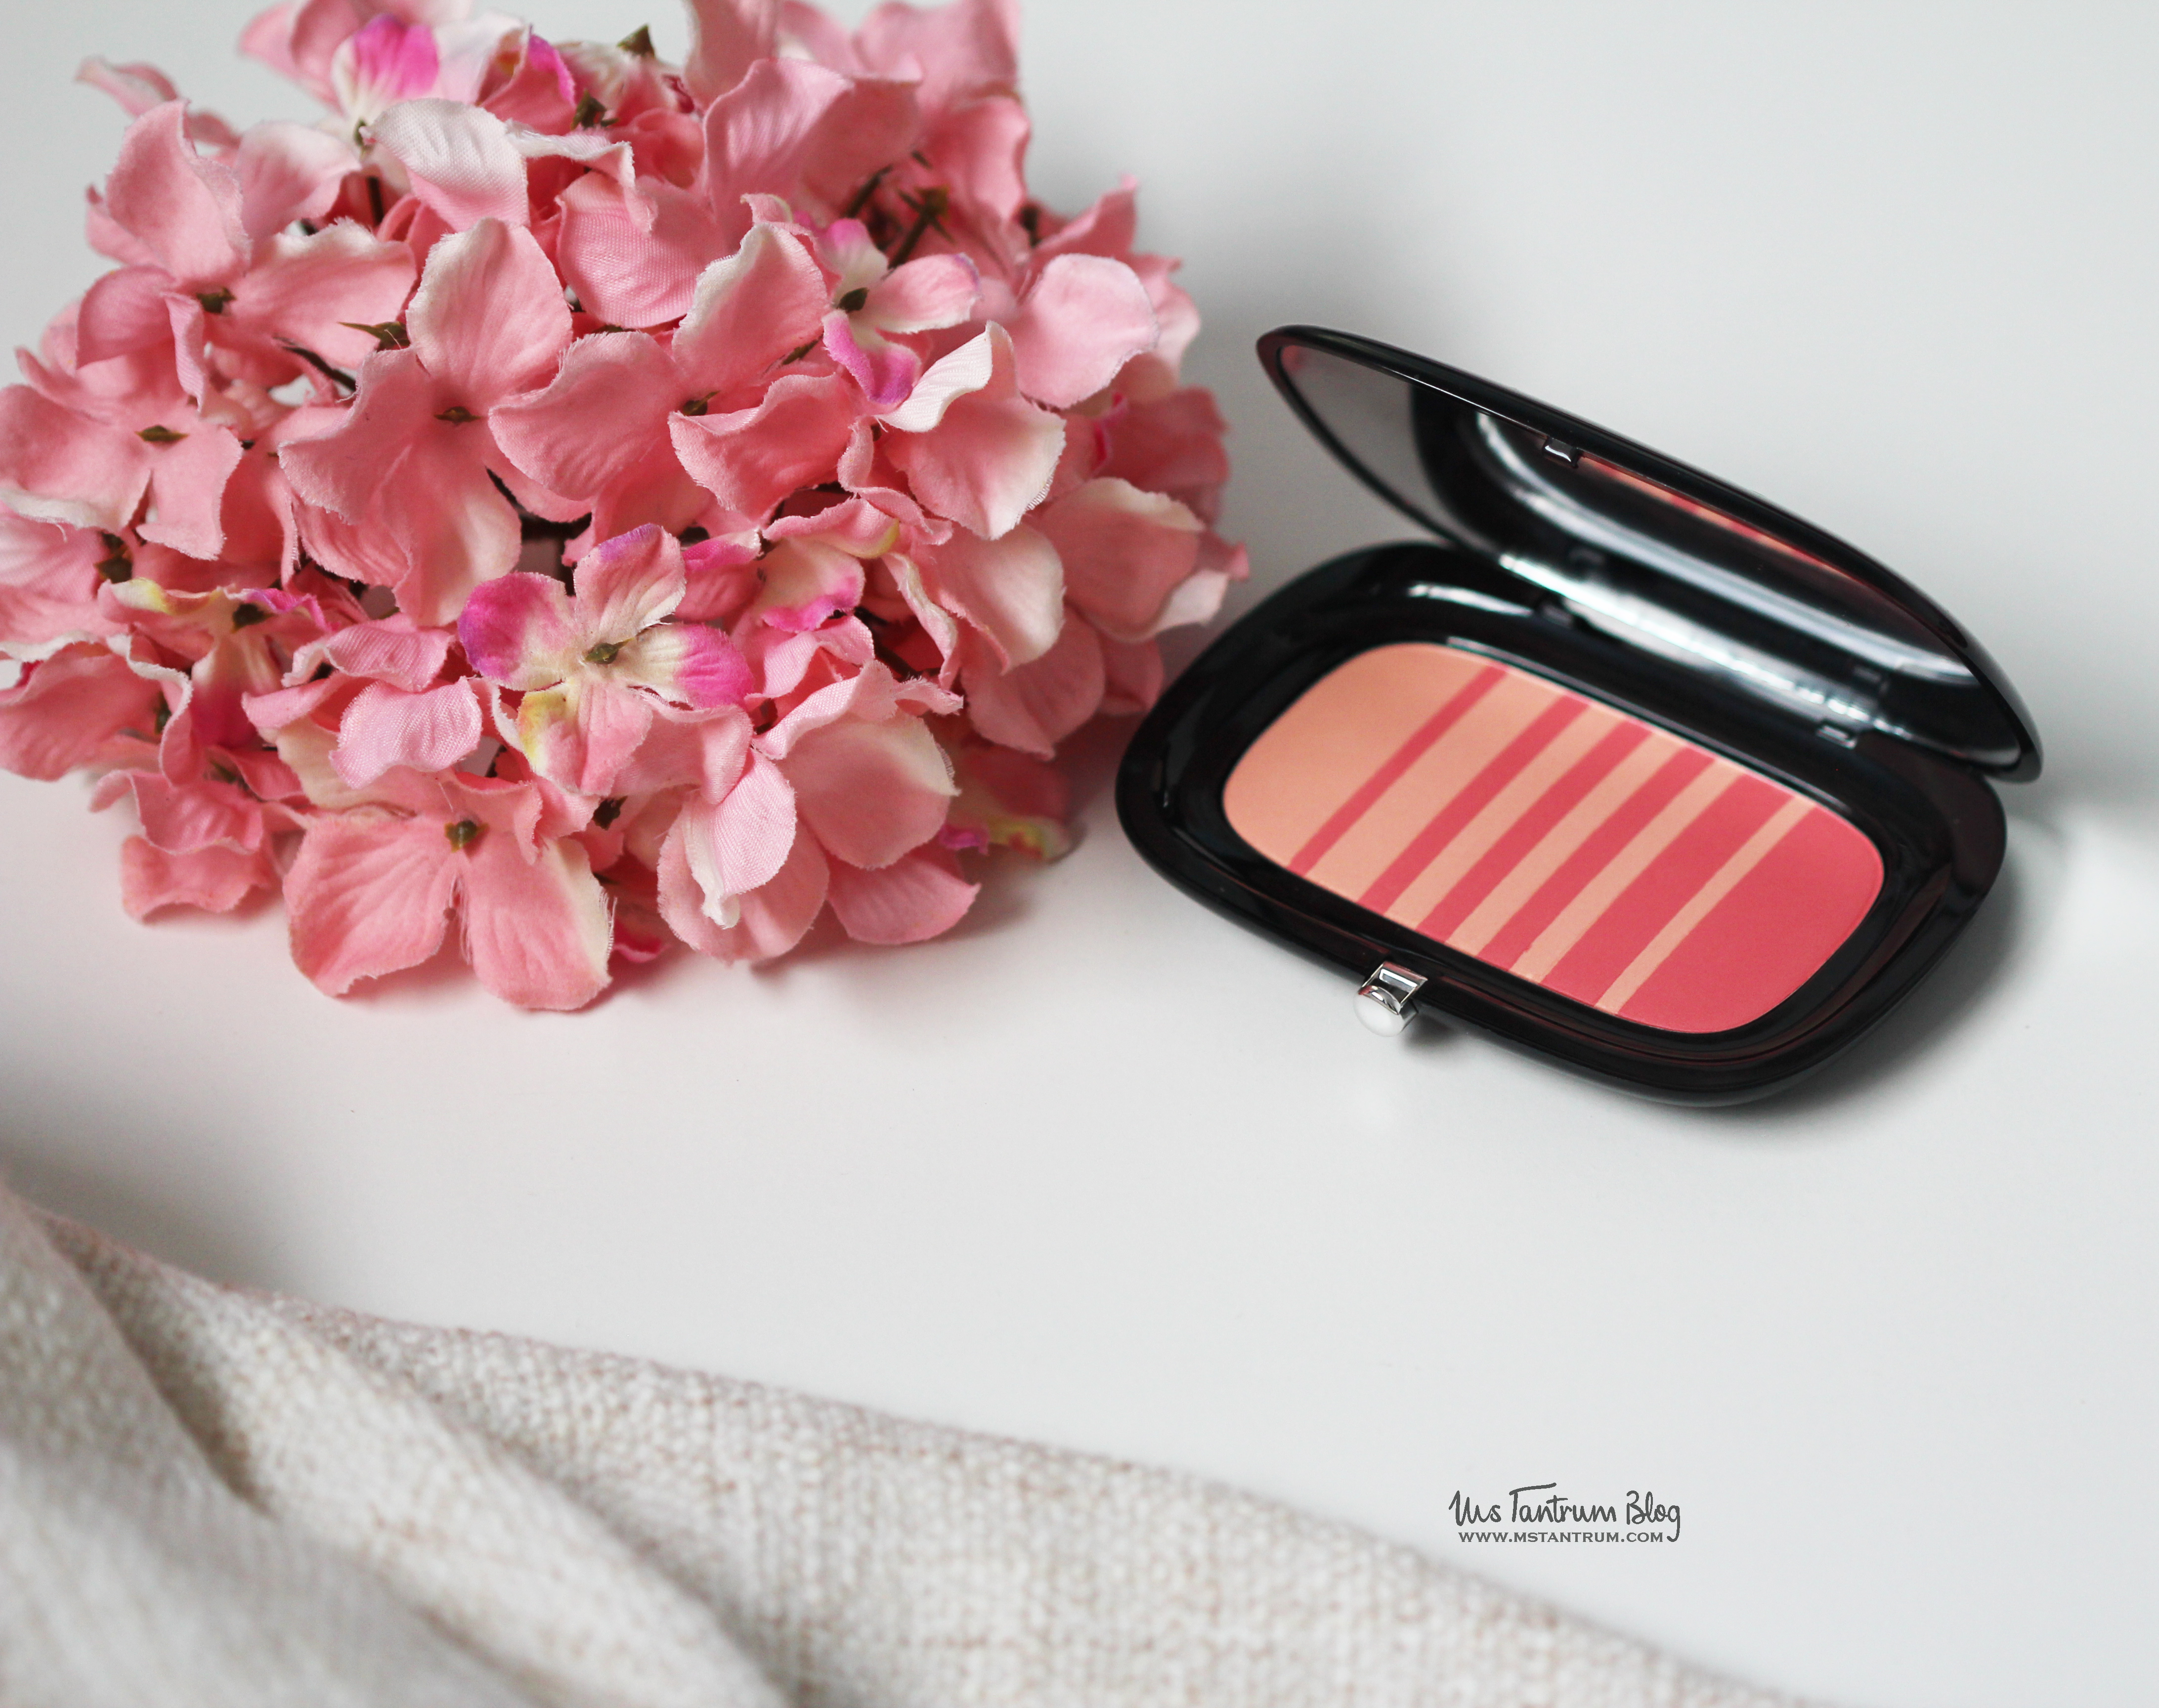 Marc Jacobs Air Blush - Lines & Last night review